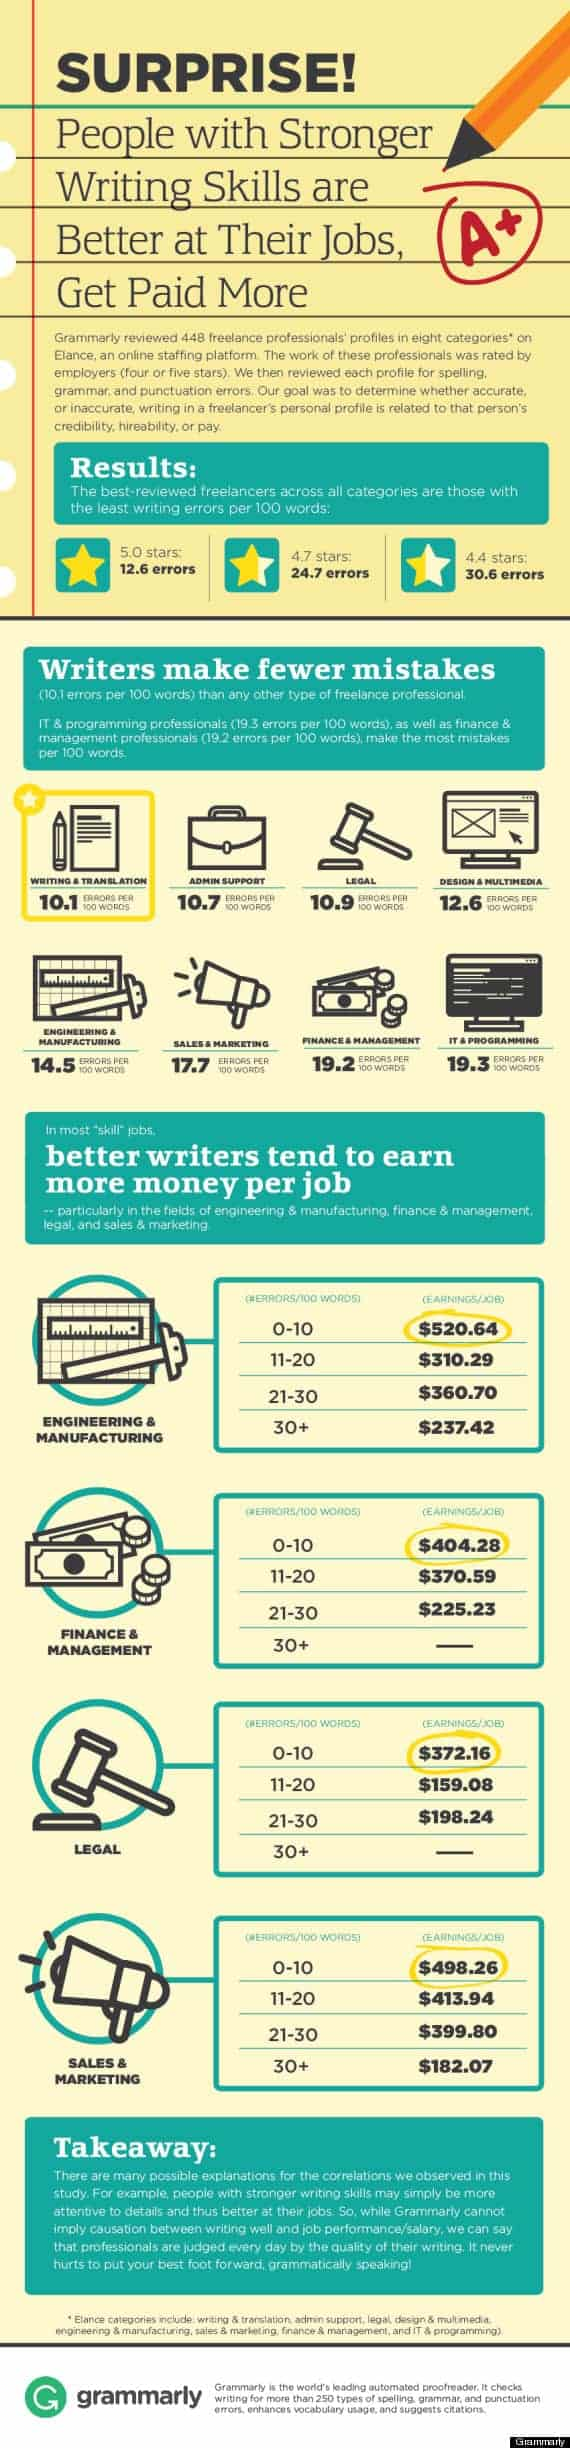 Dailyinfographic.com - Why Good Writing is Needed